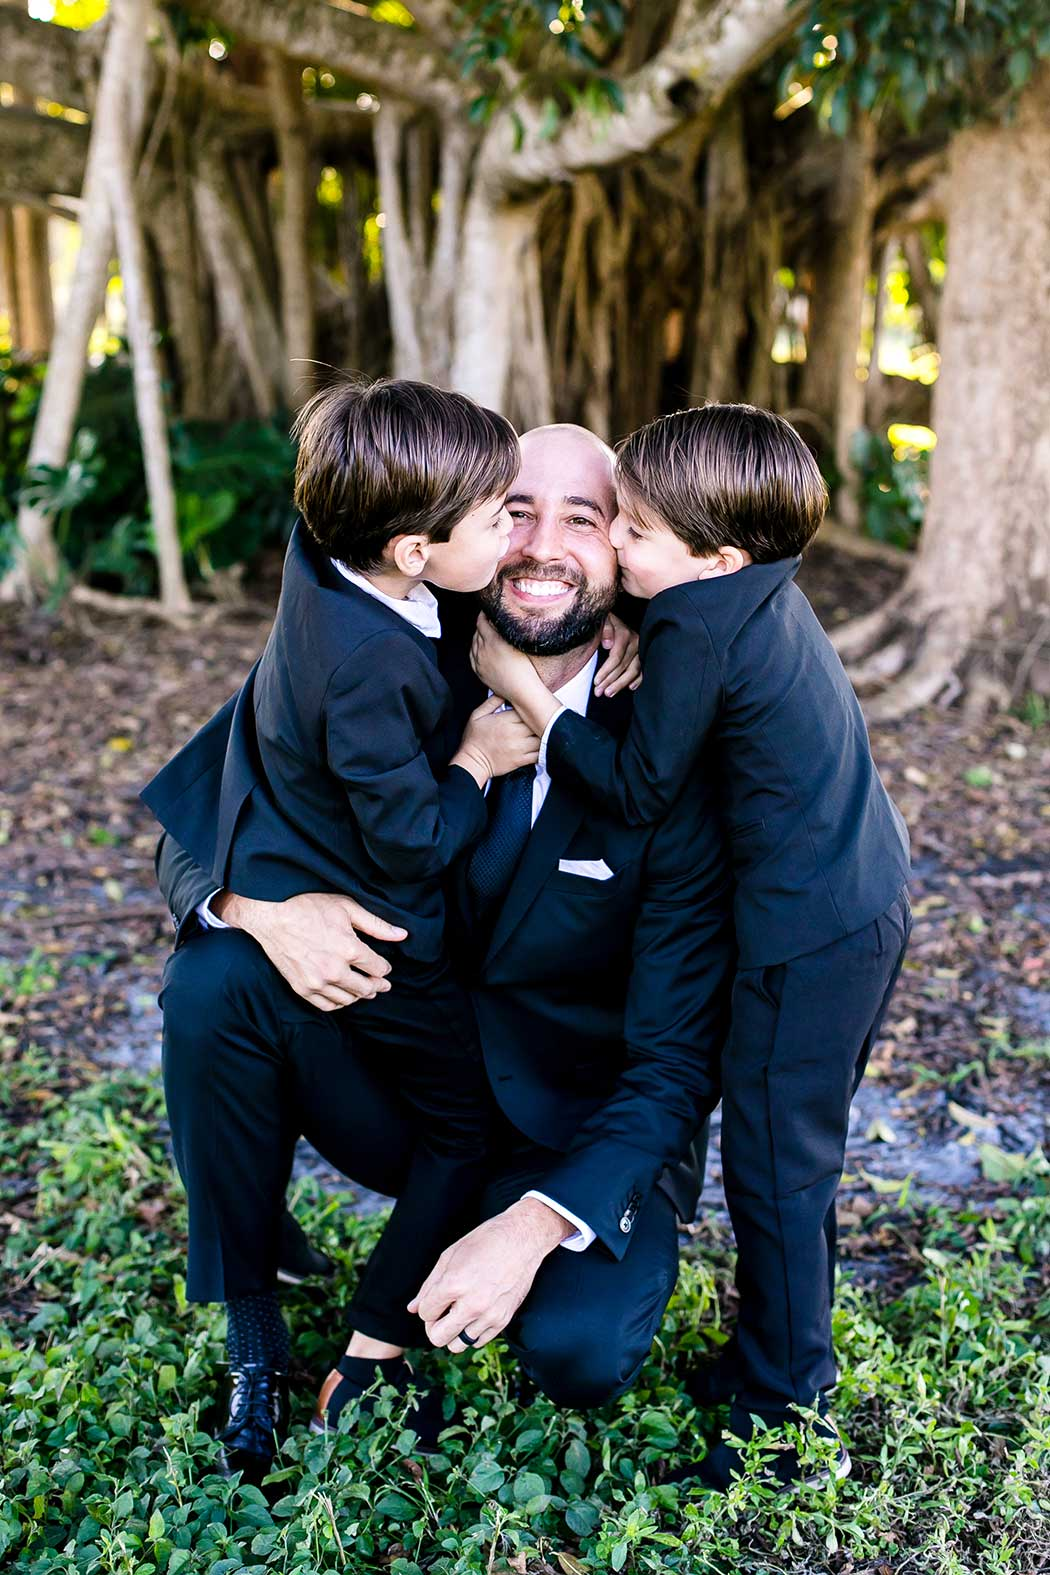 fun dad and twin boys pose for photograph | dad and twin boys photo | dad and son photo | family photography session robbins preserve